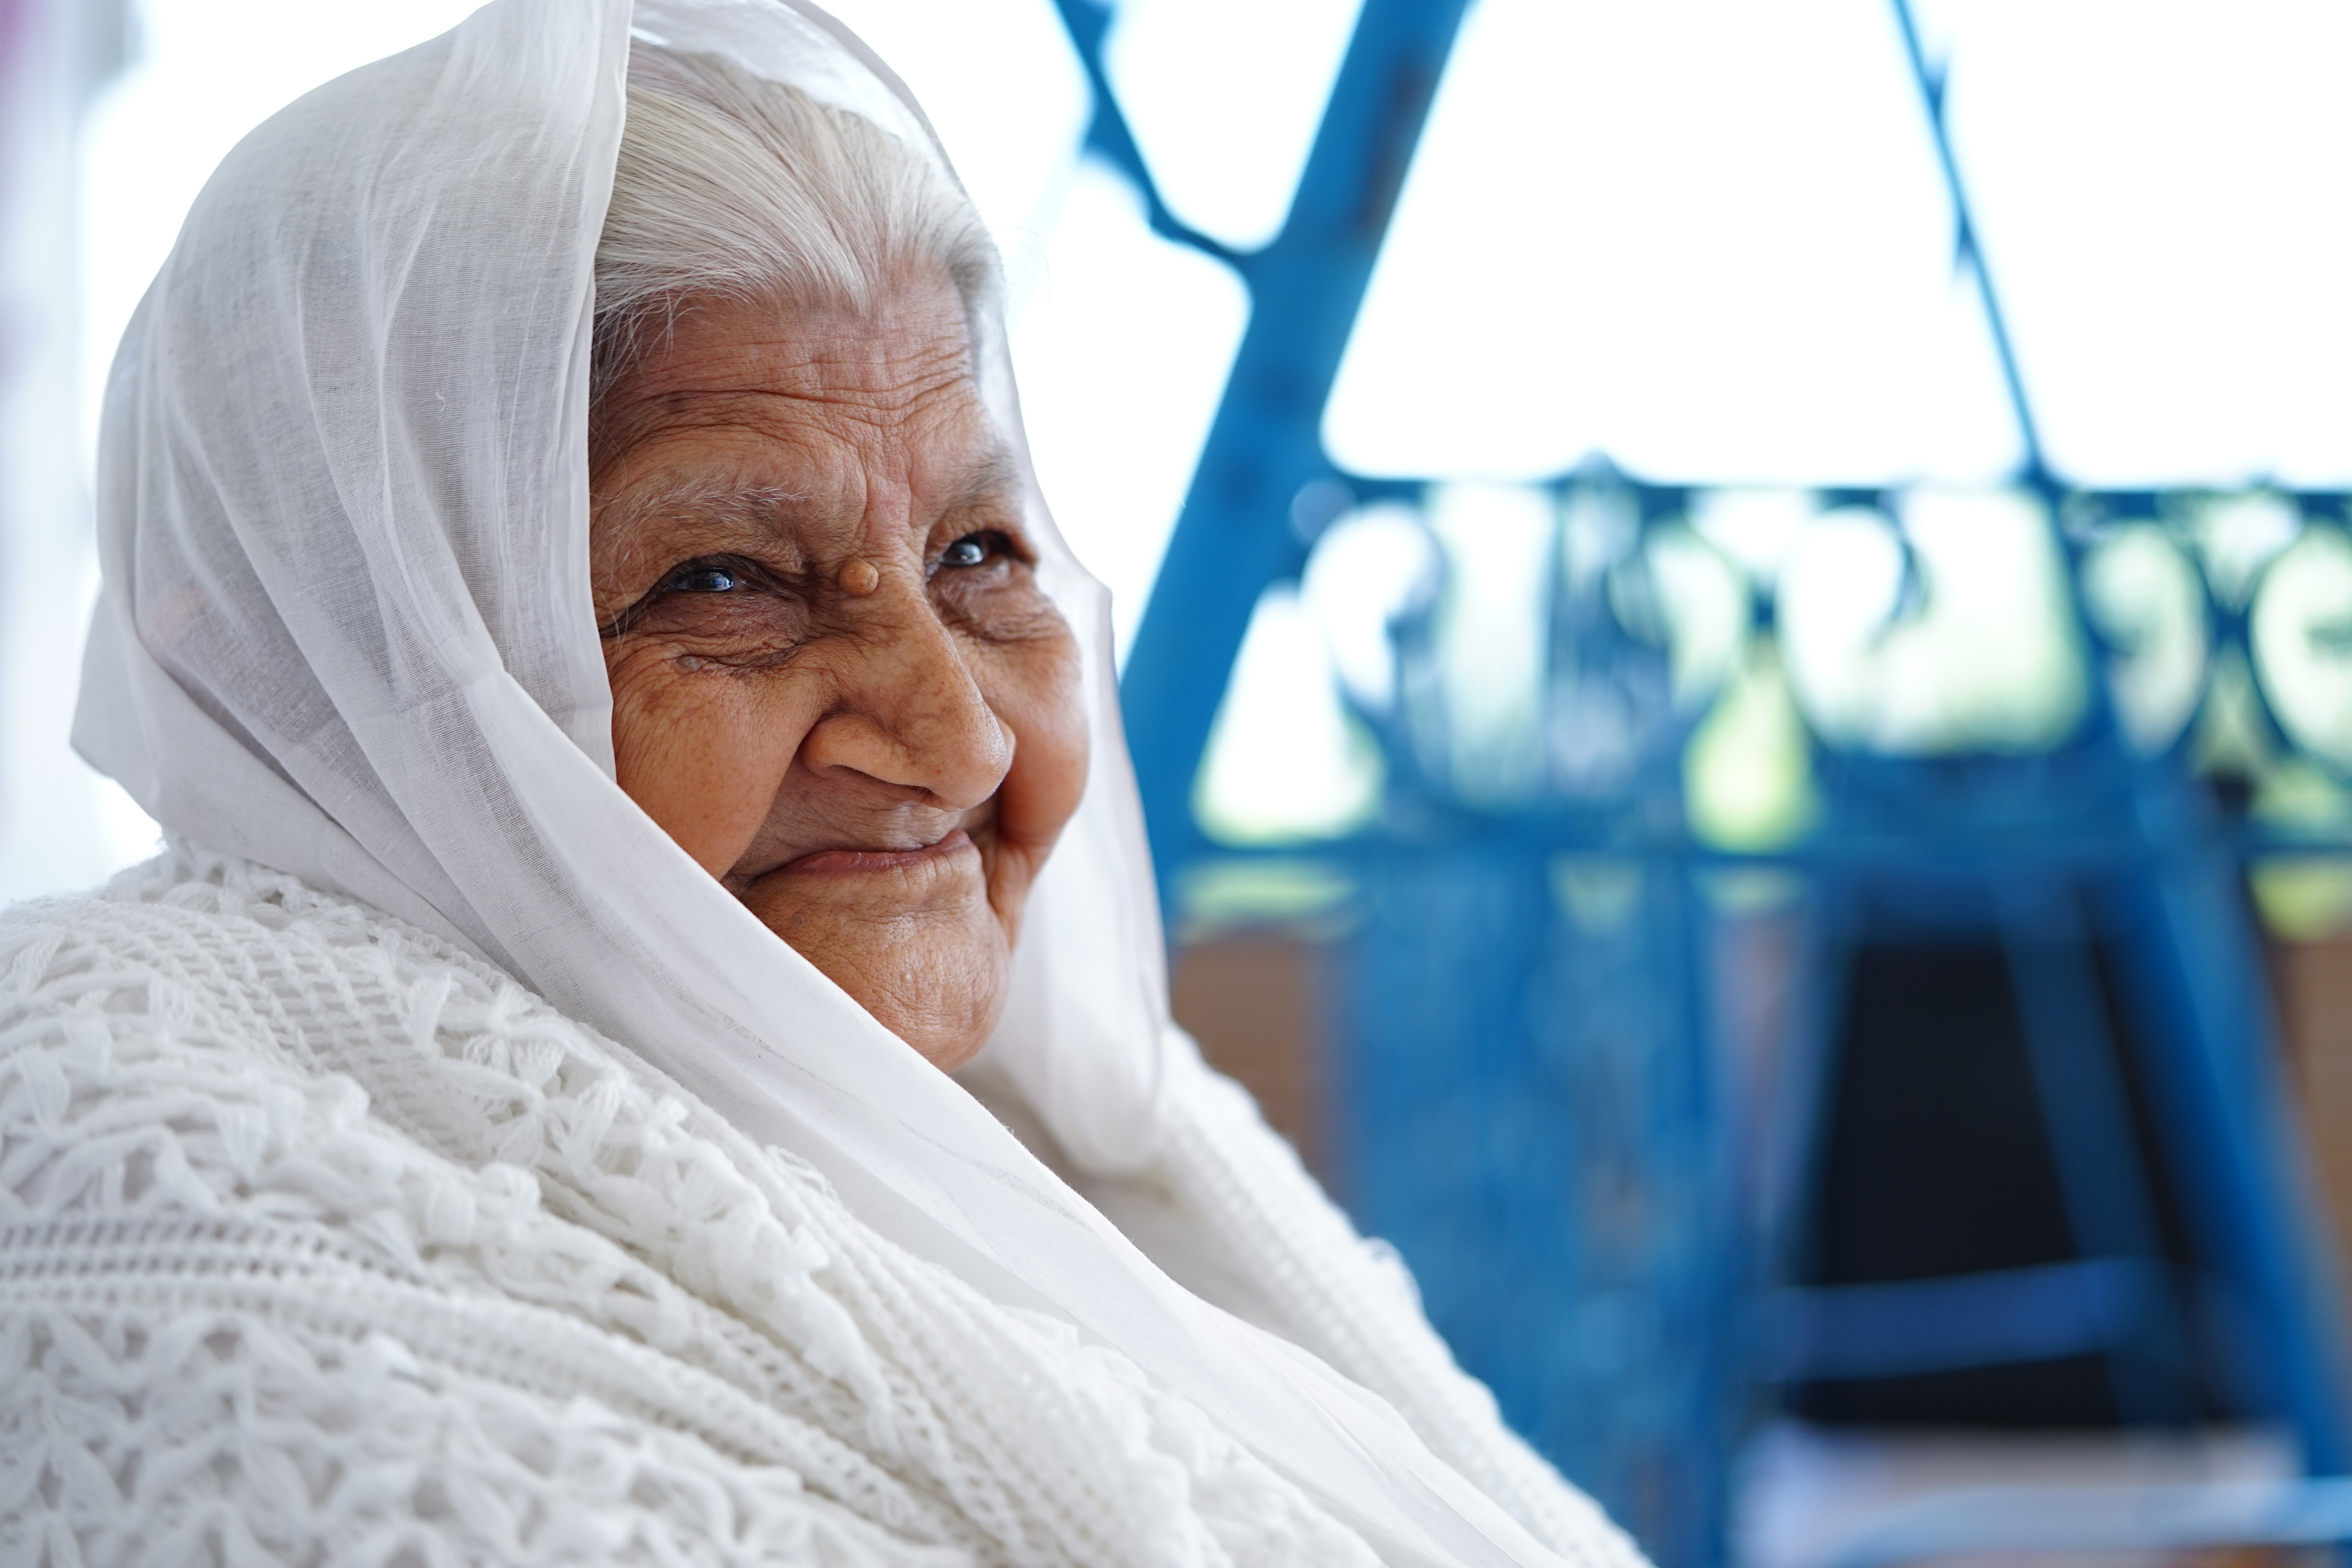 close-up photo of woman sitting while smiling